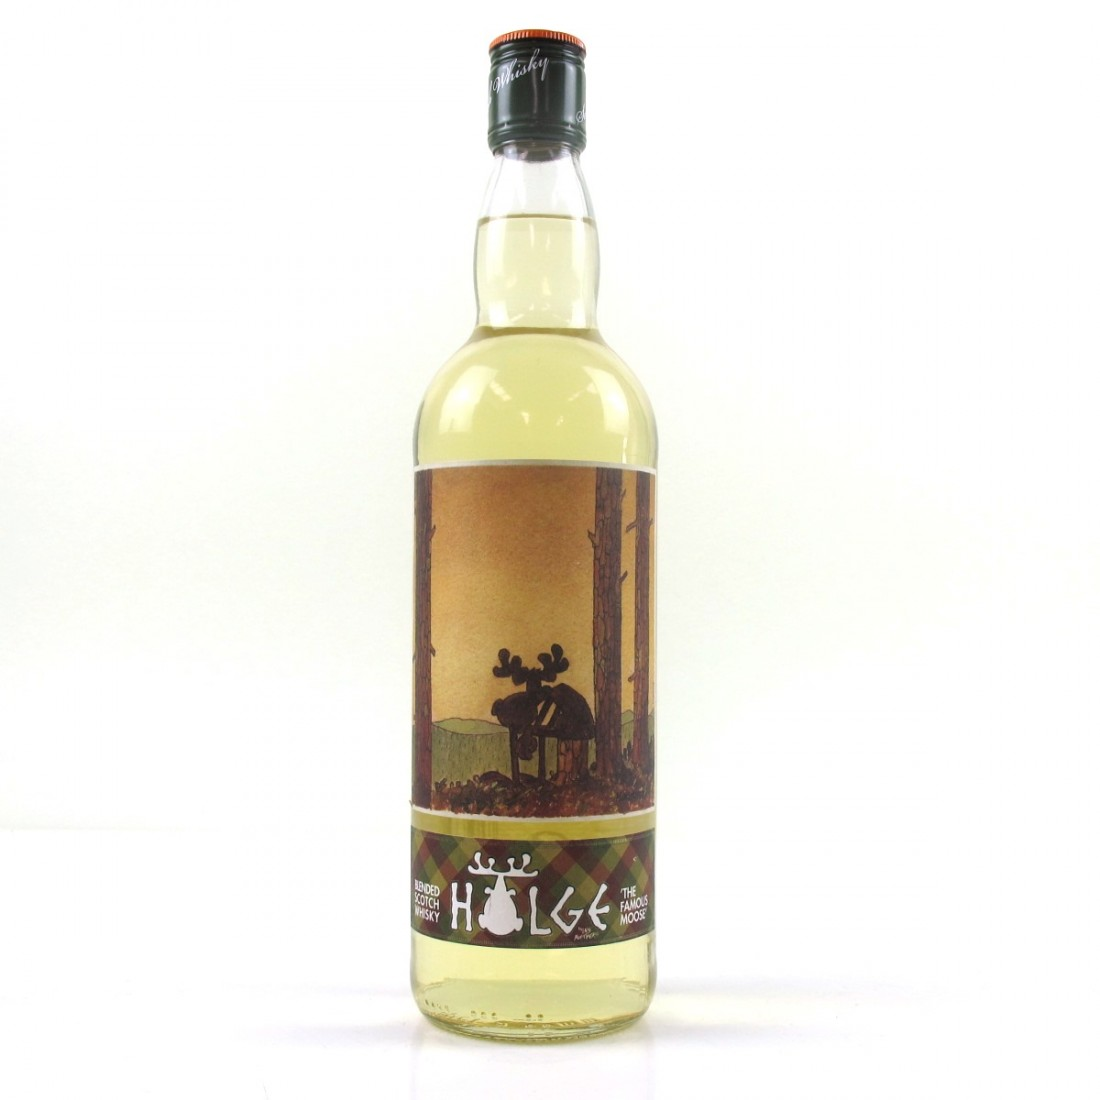 Halge The Famous Moose Scotch Whisky